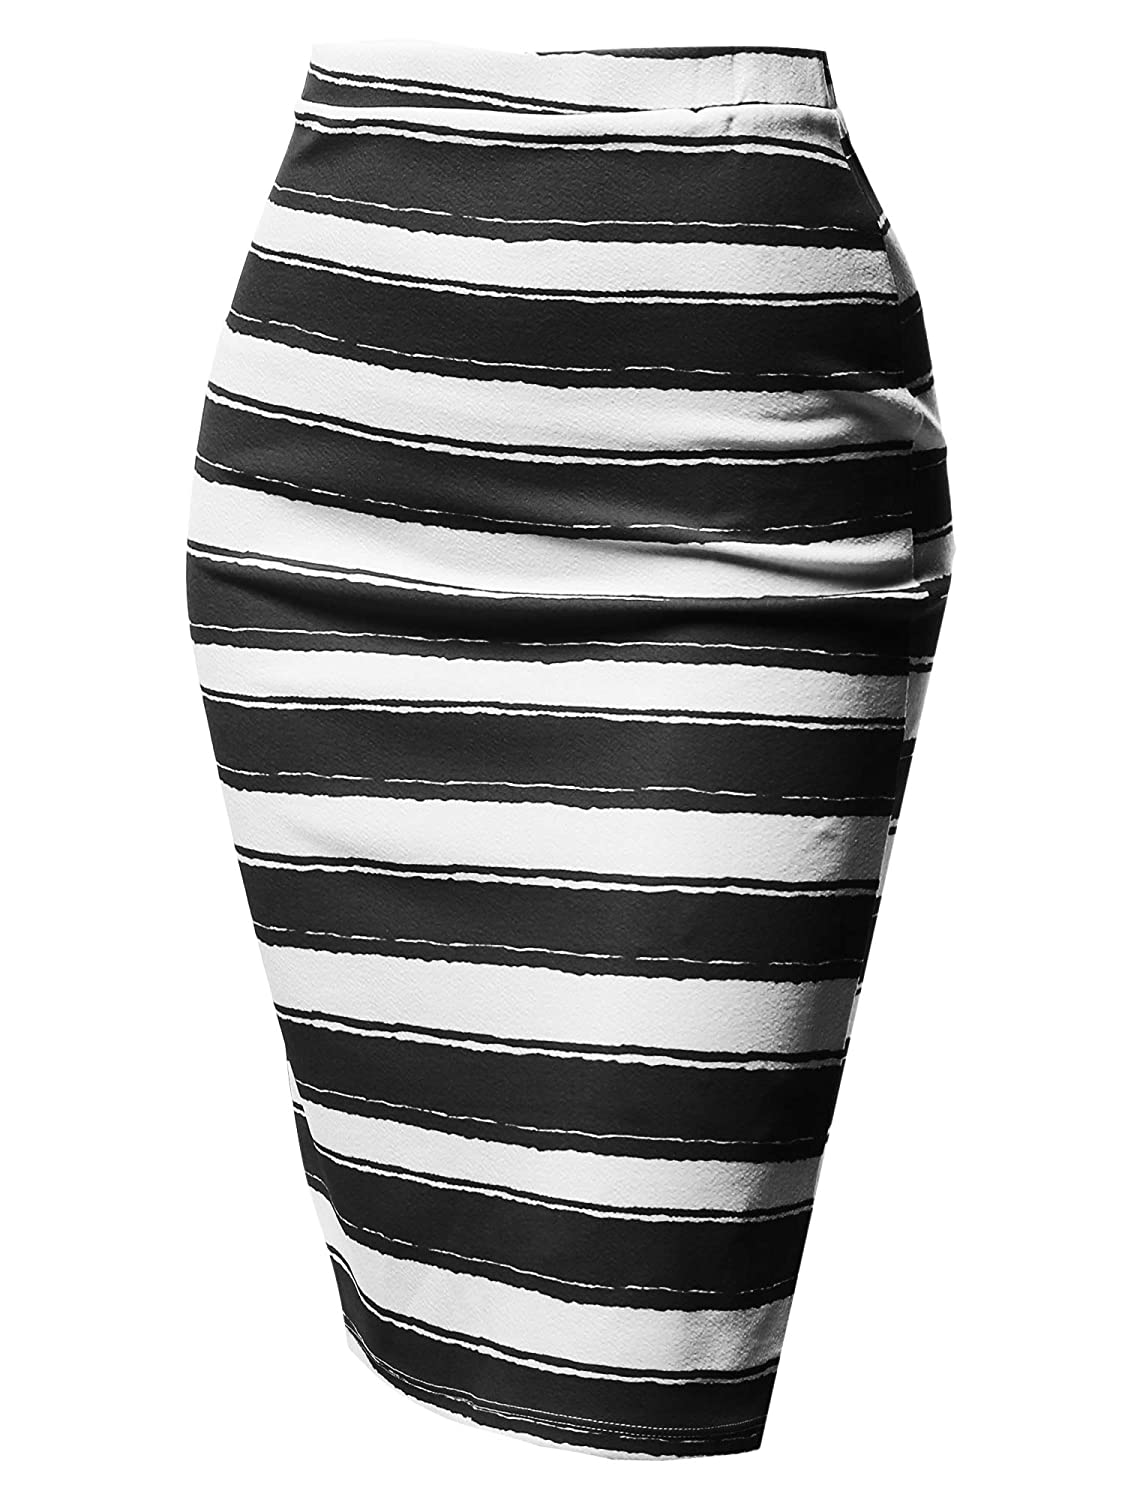 aa4c2c032 Women's Fitted Stretch Printed High Waist Midi Pencil Skirt - Made in USA  at Amazon Women's Clothing store: